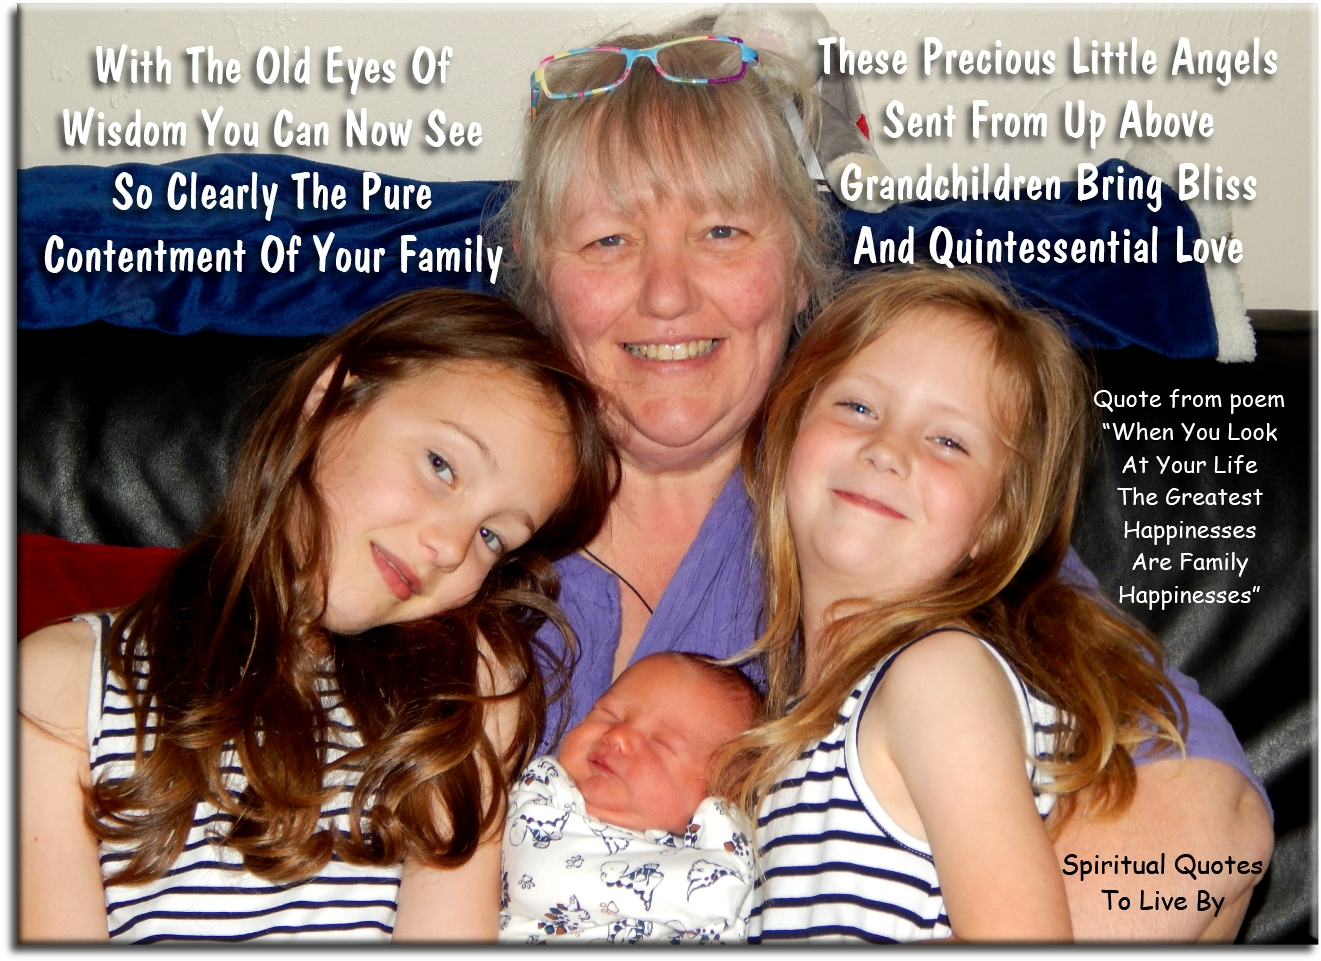 With the old eyes of wisdom you can now see so clearly the pure contentment of your family, these precious little angels sent from.. - Trina Graves of Spiritual Quotes To Live By